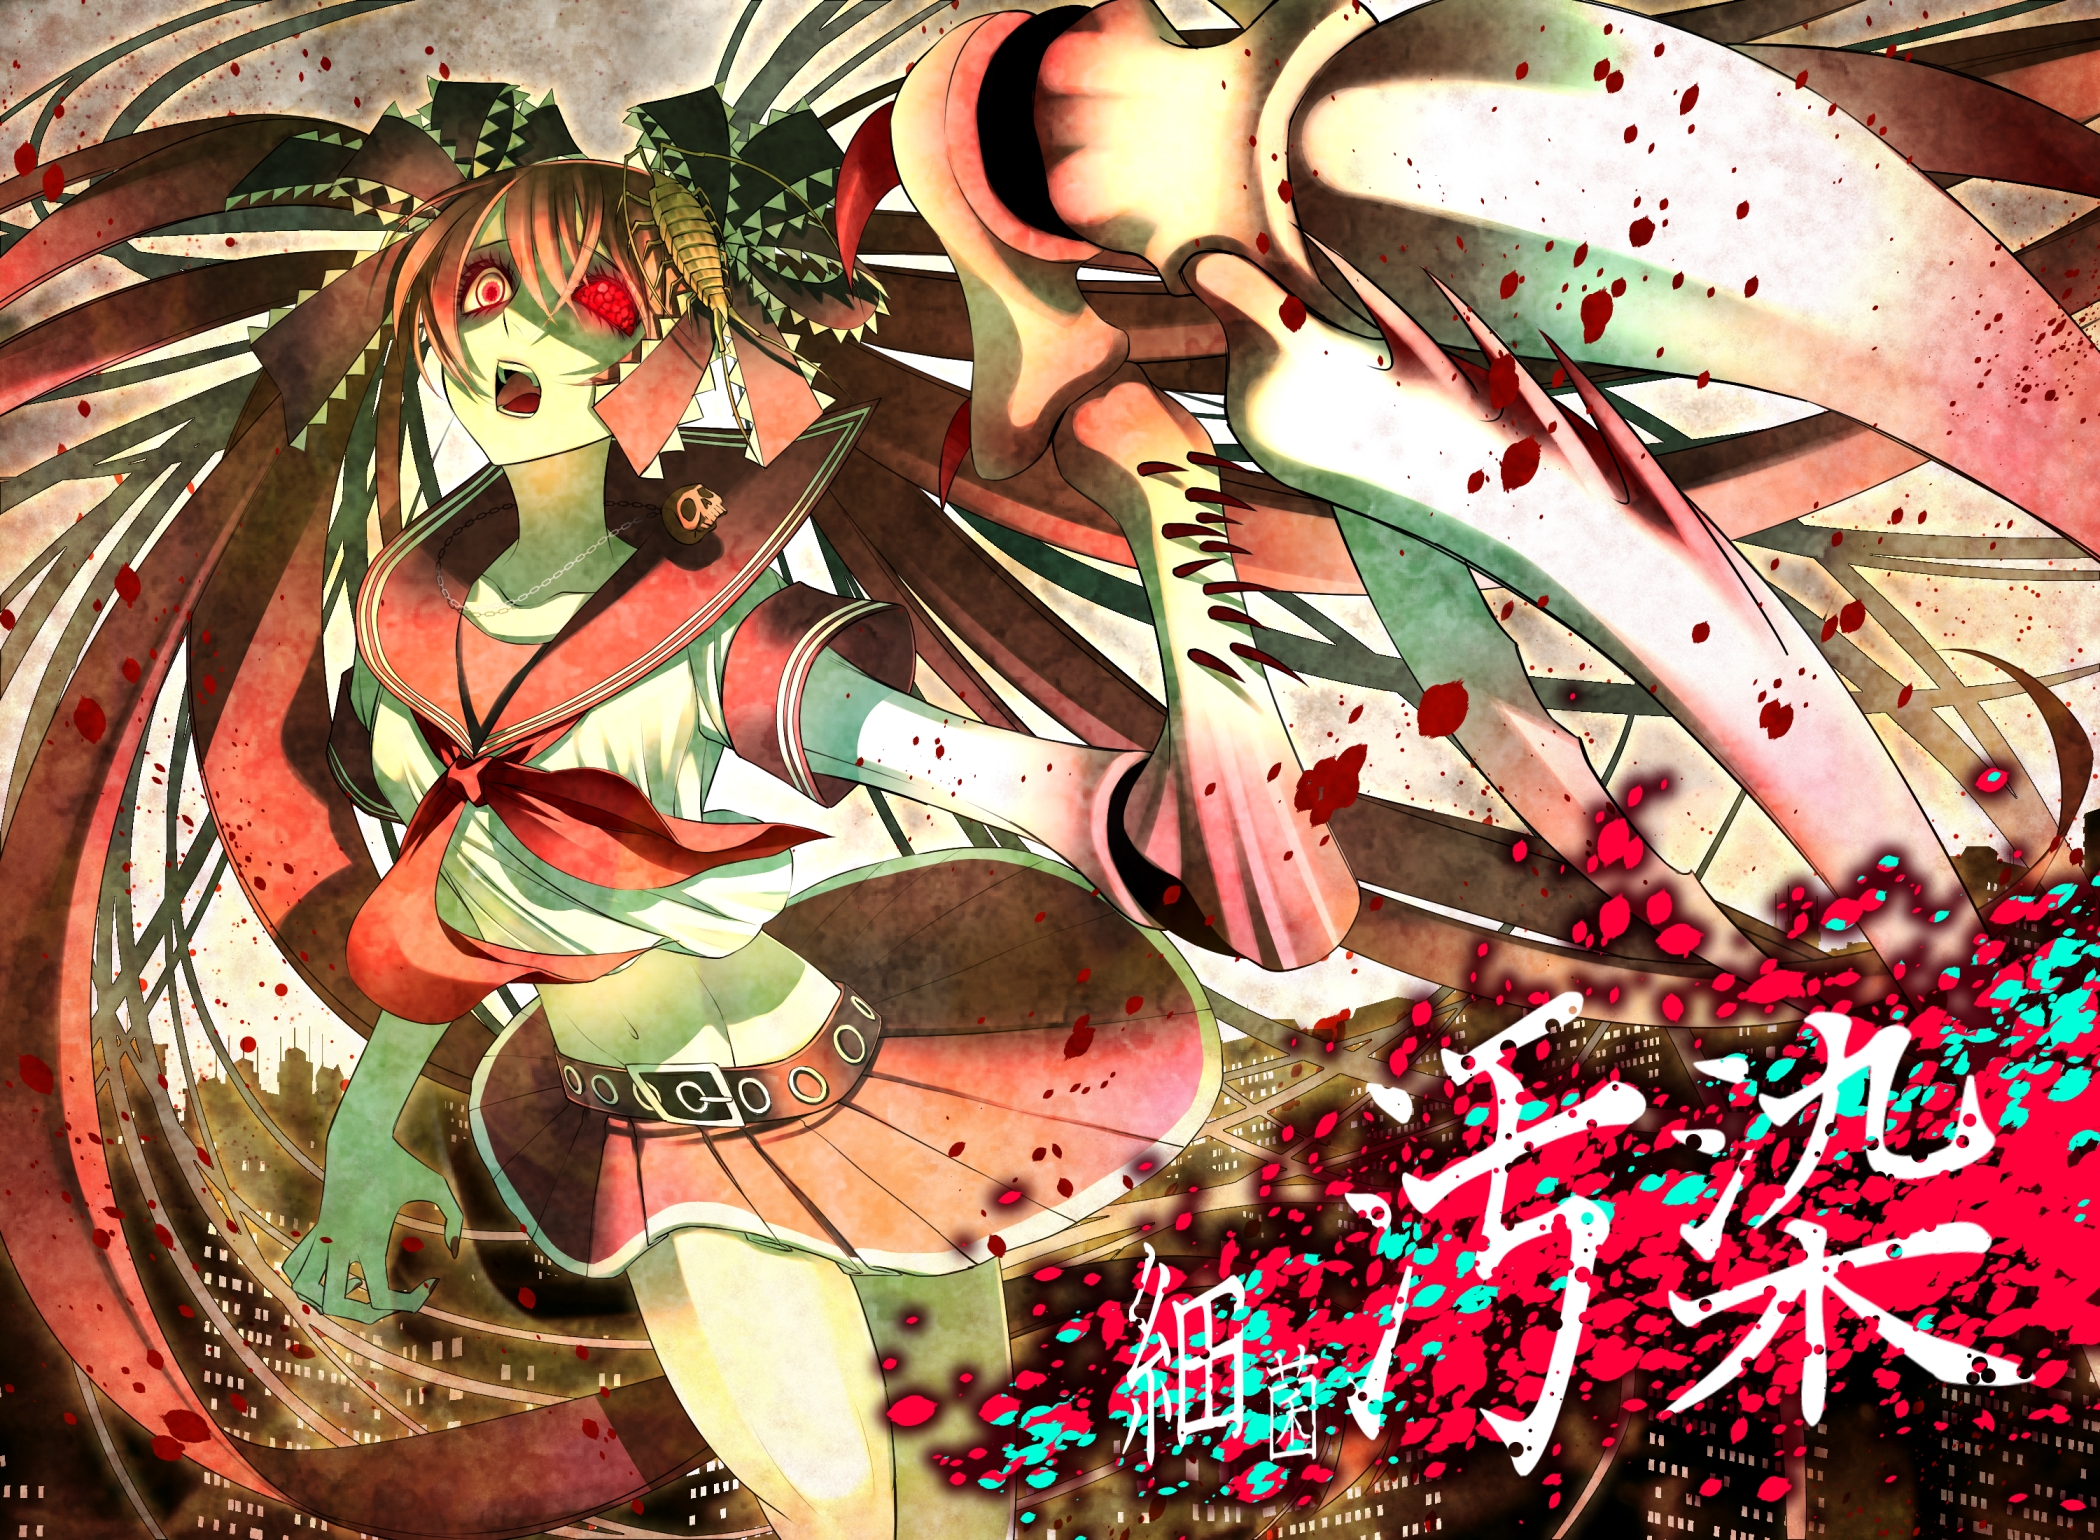 bacterial contamination - vocaloid - image  1008652